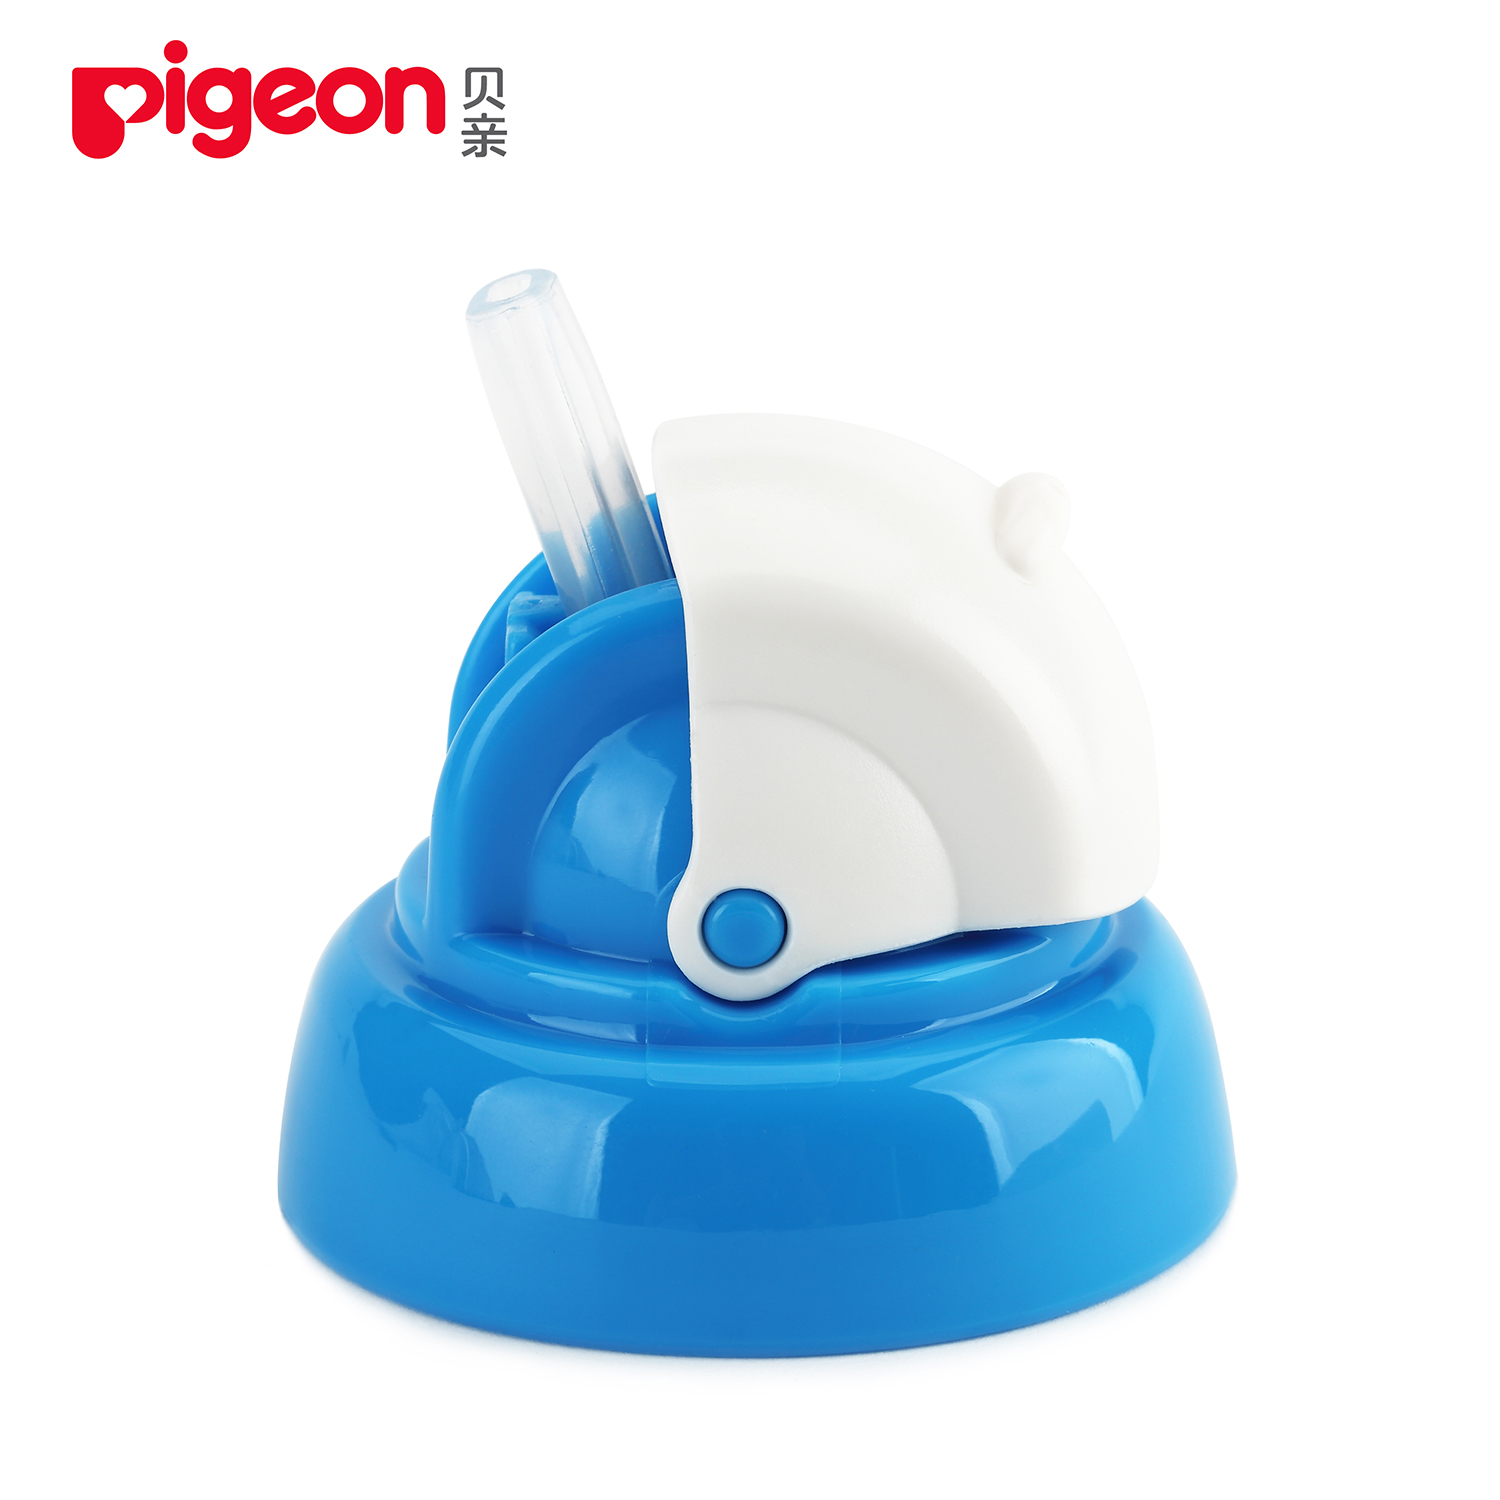 Genuine pigeon magmag duckbill cup baby cups baby training cup straw accessories original lid straw